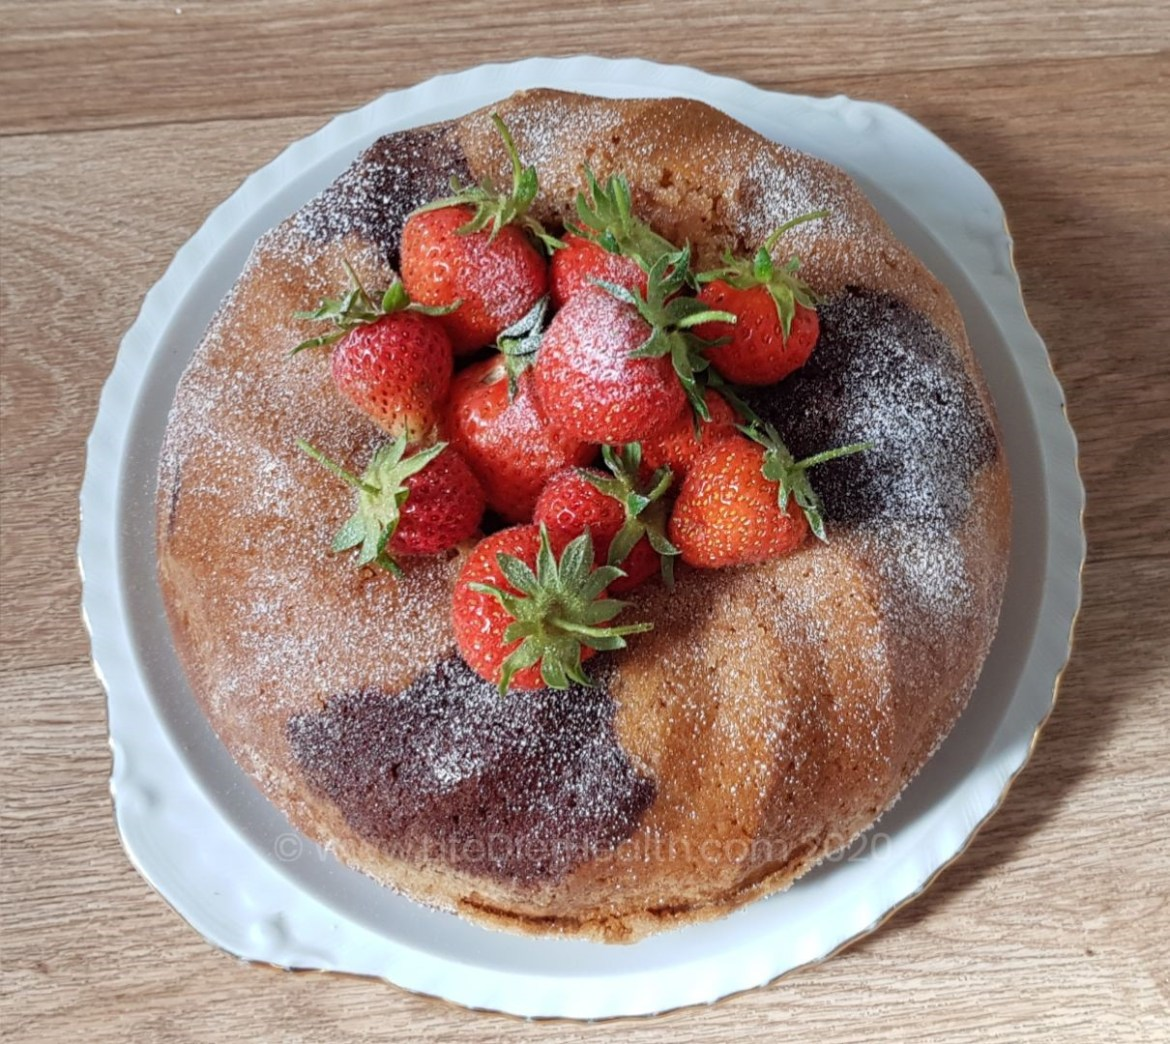 Marble bundt cake on a white and gold rimmed plate, topped with strawberries and dusted with icing sugar